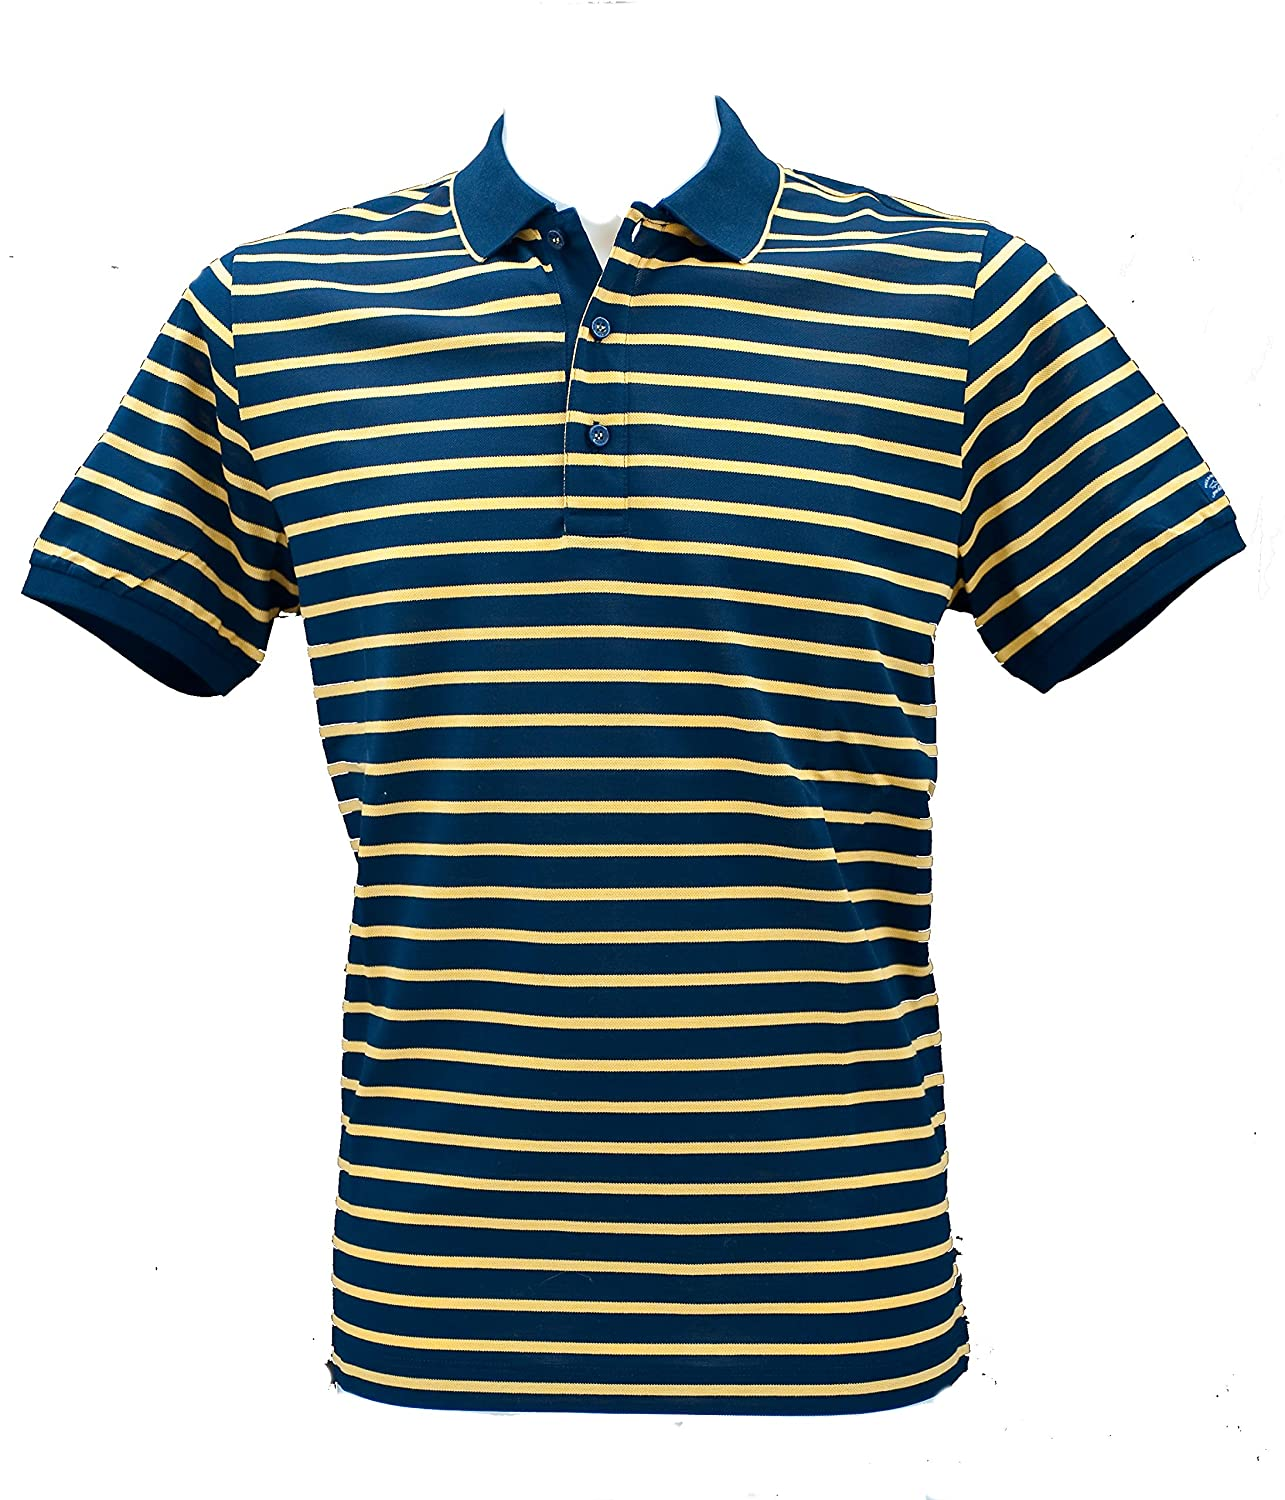 PAUL & SHARK Polo Slim Fit BLU Righe Gialle M: Amazon.es: Ropa y ...